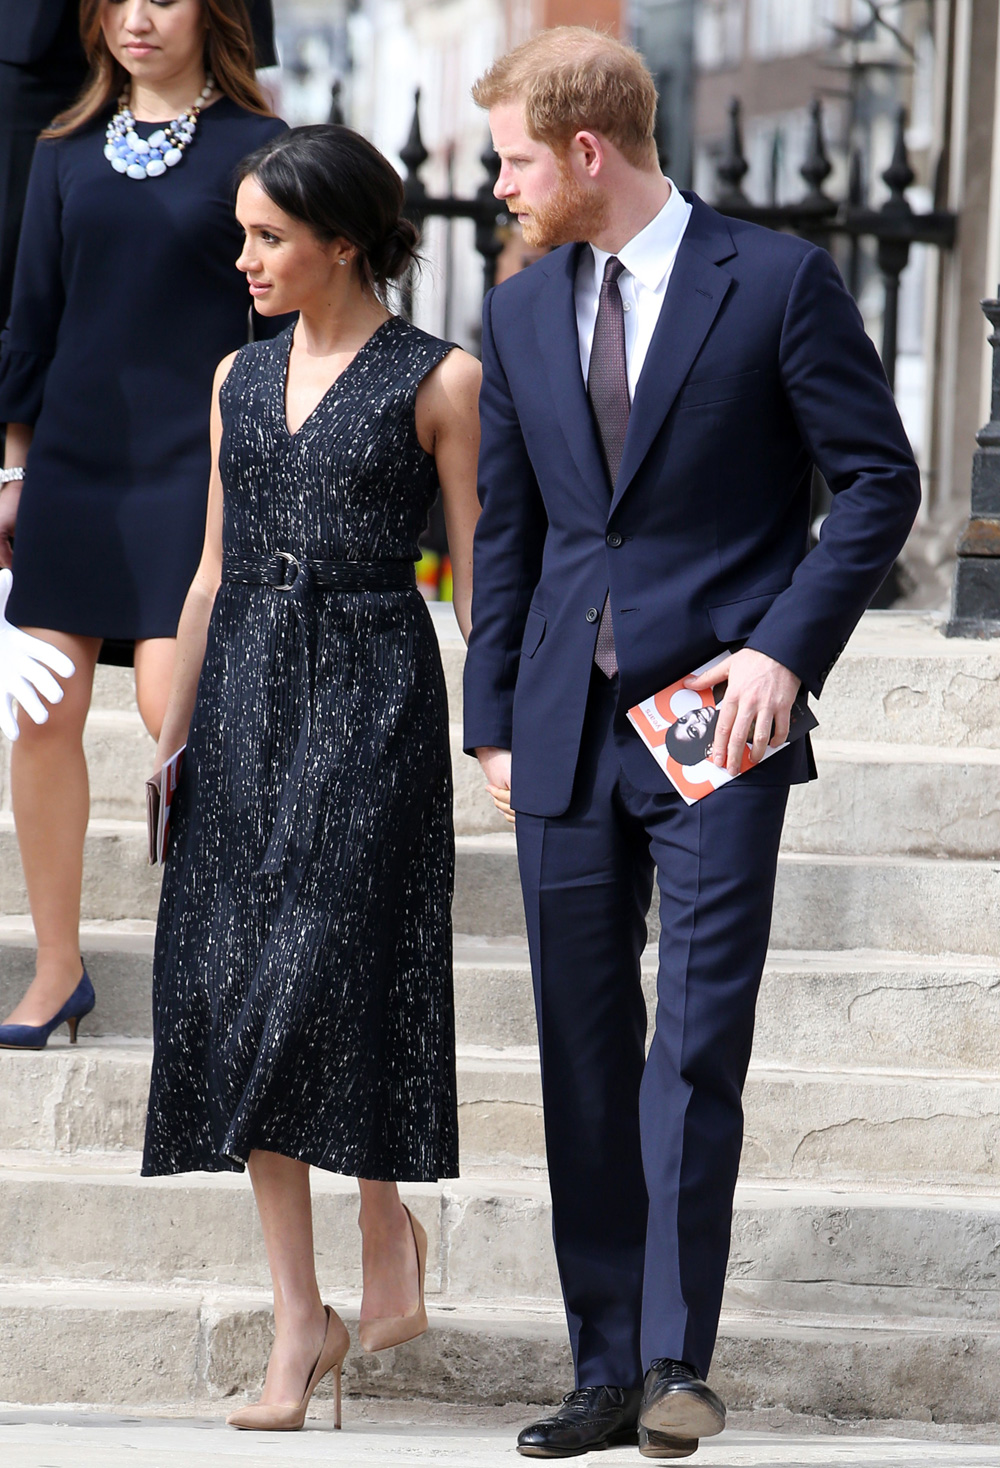 Meghan Markle\'s Wedding Dress: What Will She Wear?   About Her